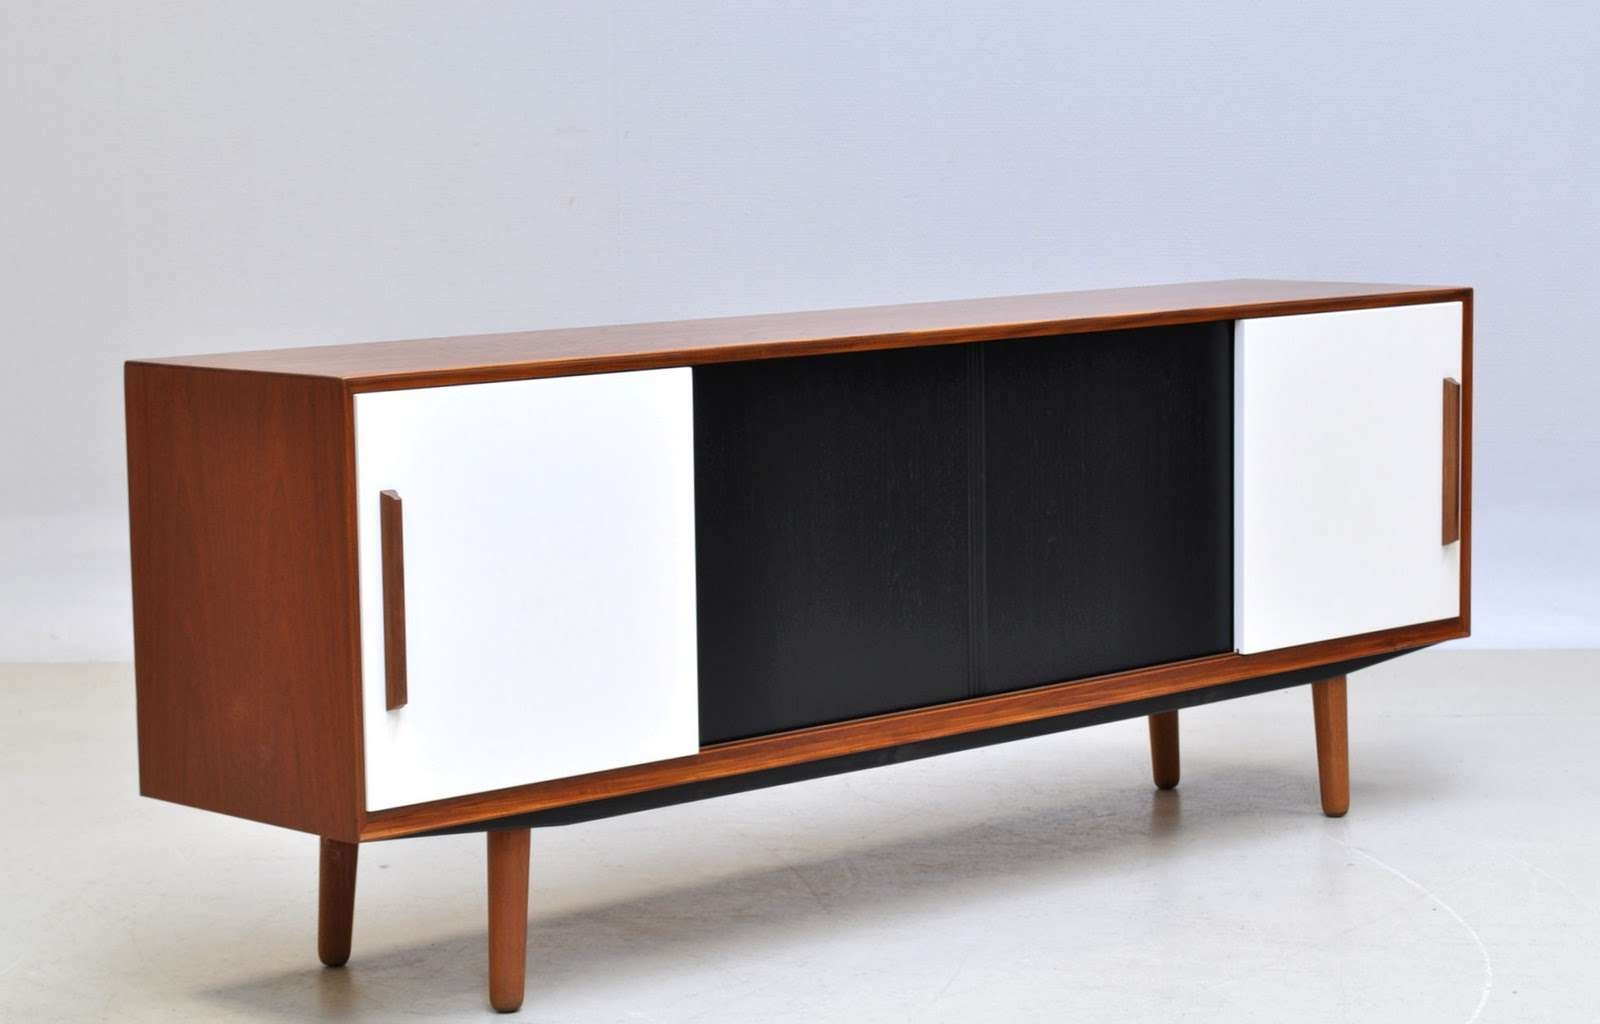 Best Design Ideas Of Modern Sideboards. Home Furniture (View 17 of 20)